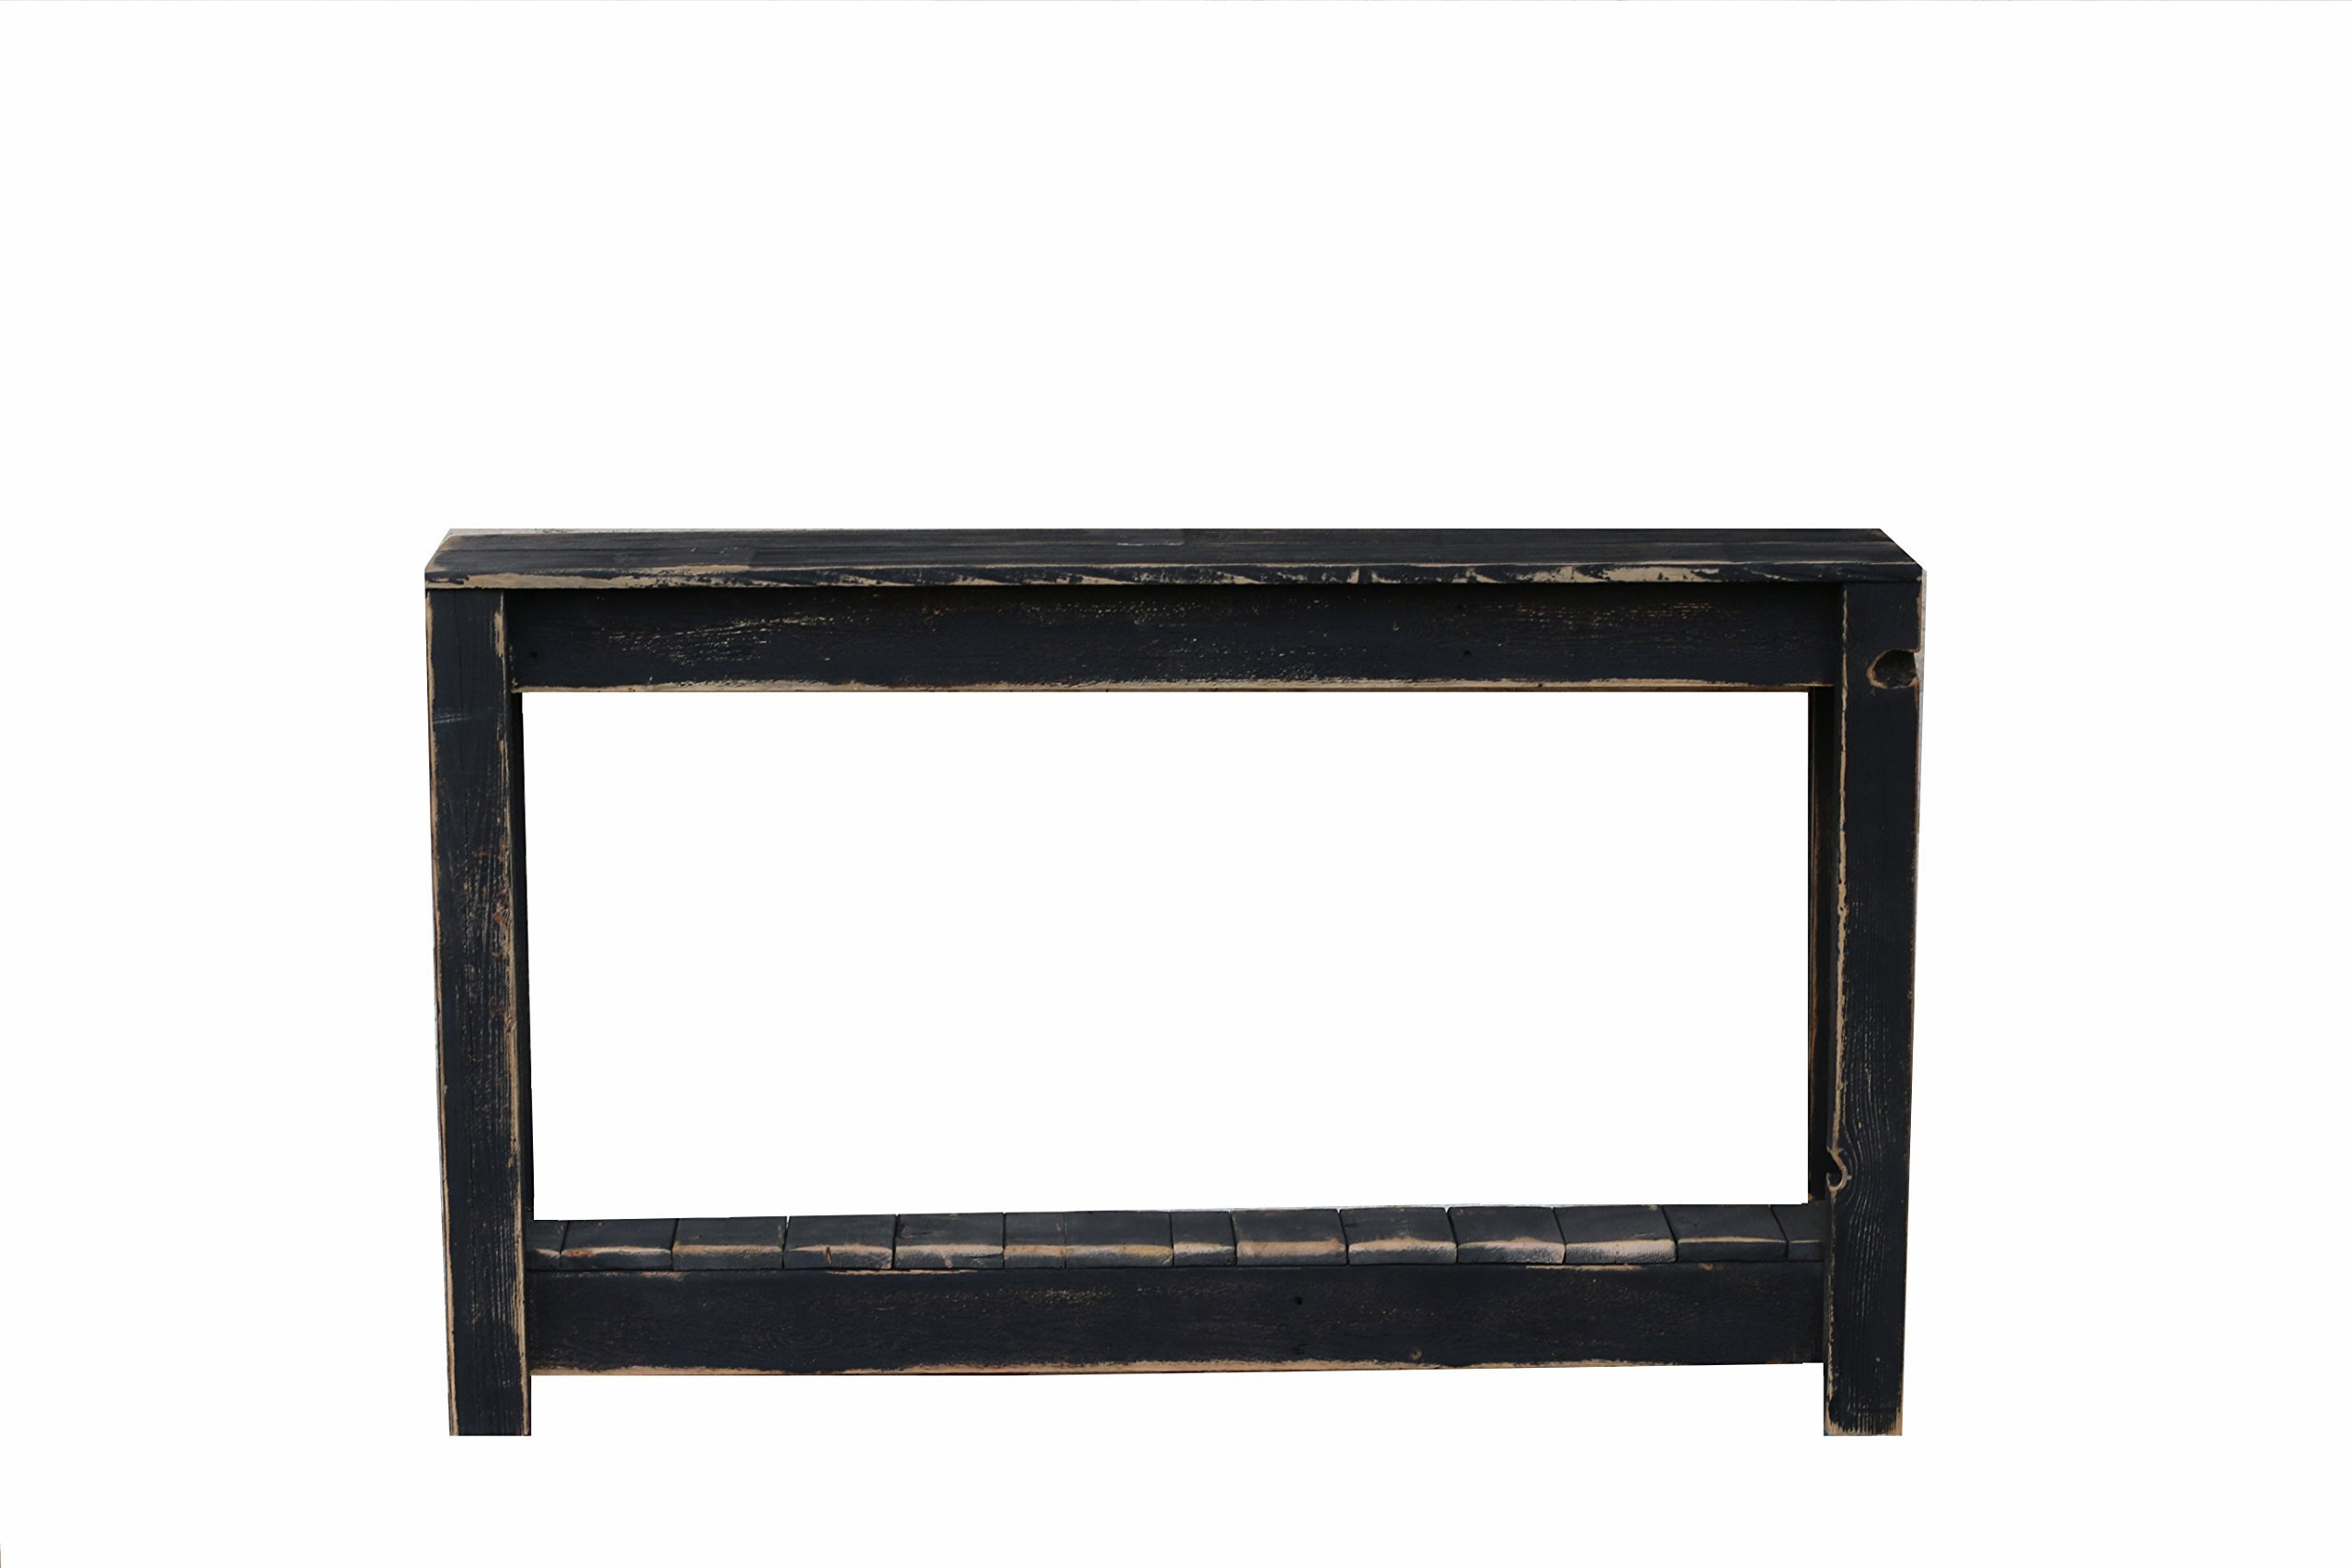 46 Inch Rustic Console -  - living-room-furniture, living-room, console-tables - 71Nc qaHAAL -